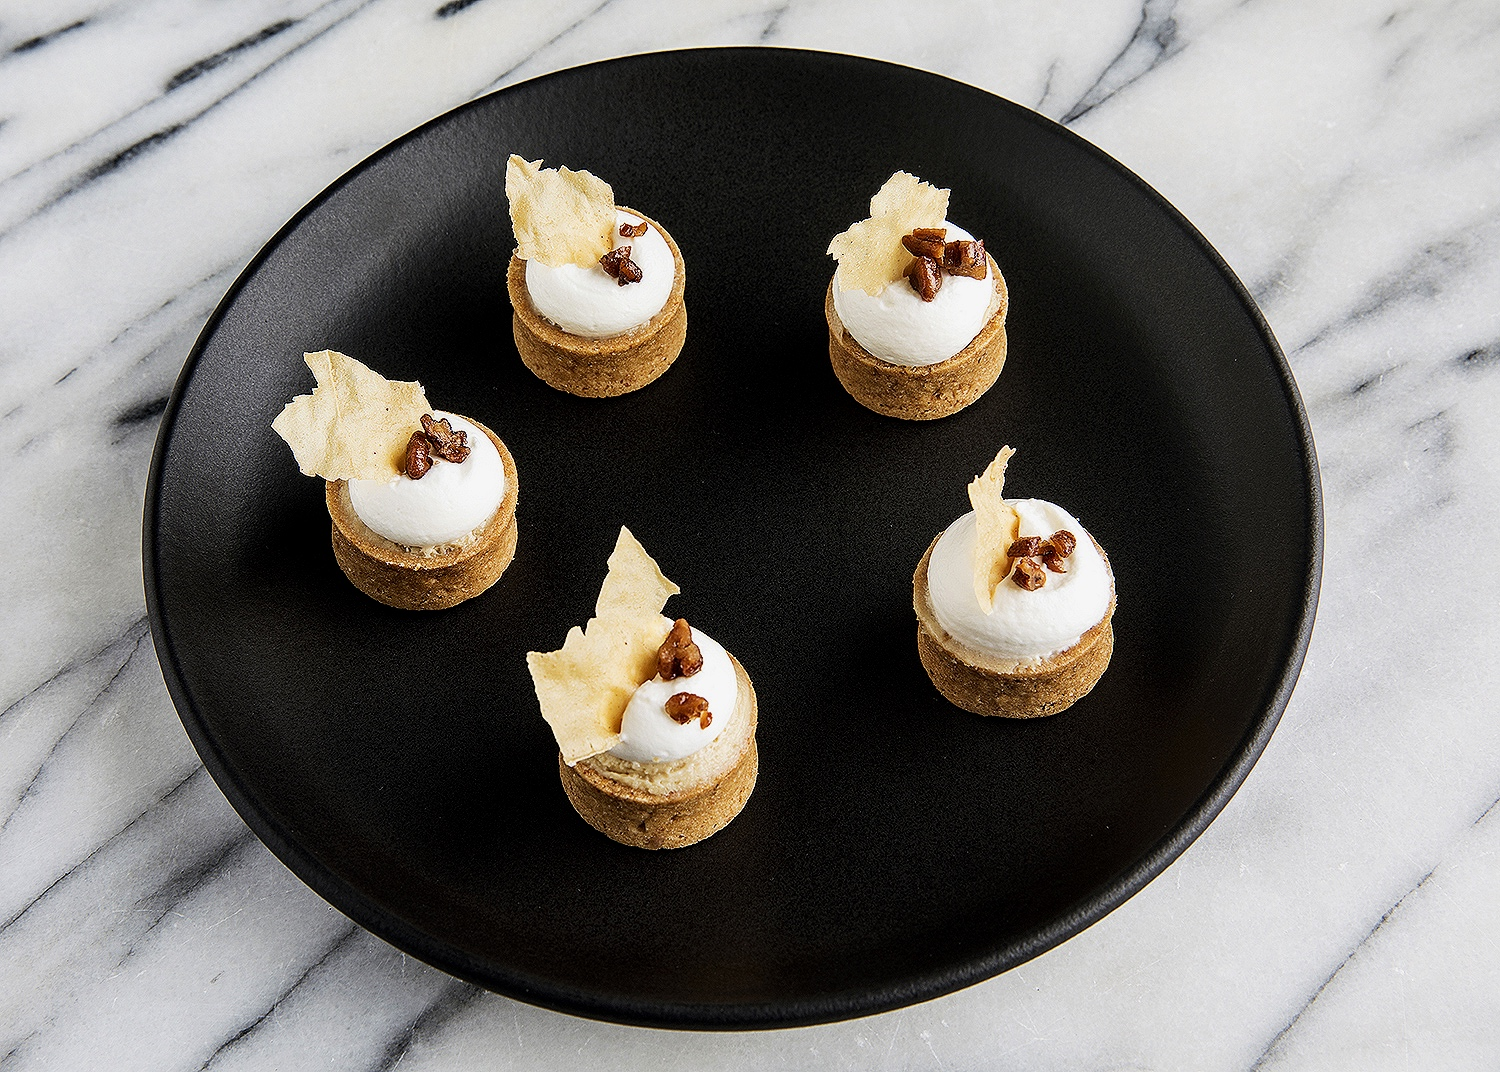 Maple tartlets with whipped cream and walnut pieces